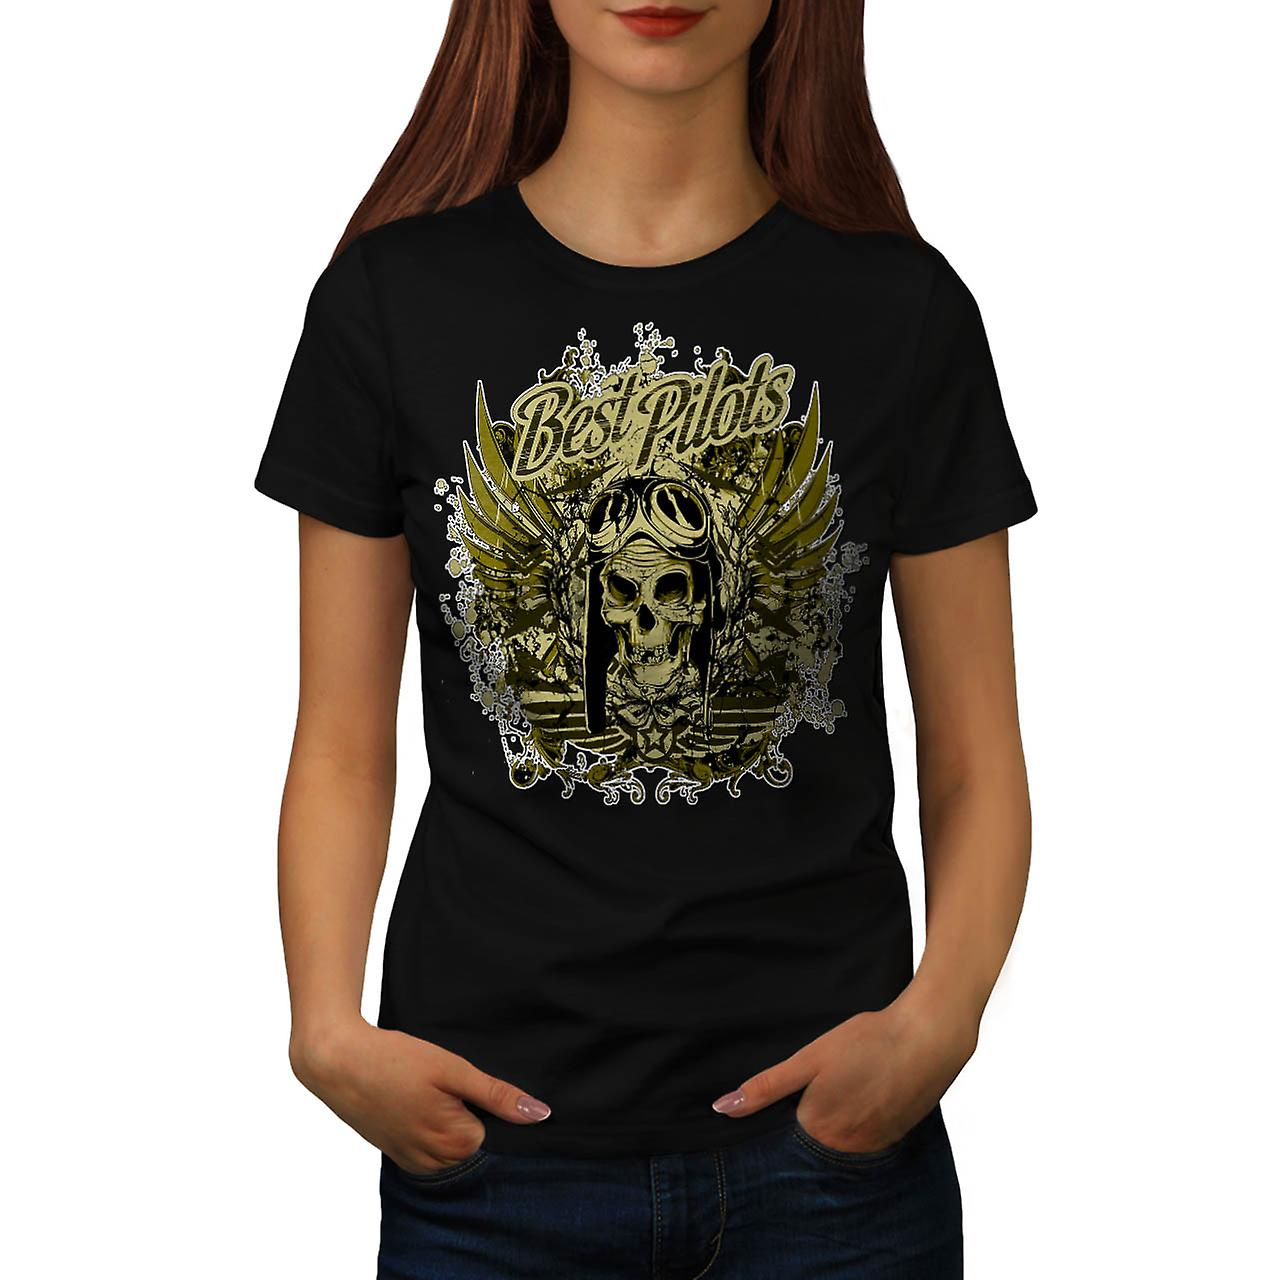 Best Pilot Fly Plane Flight Hell Women Black T-shirt | Wellcoda